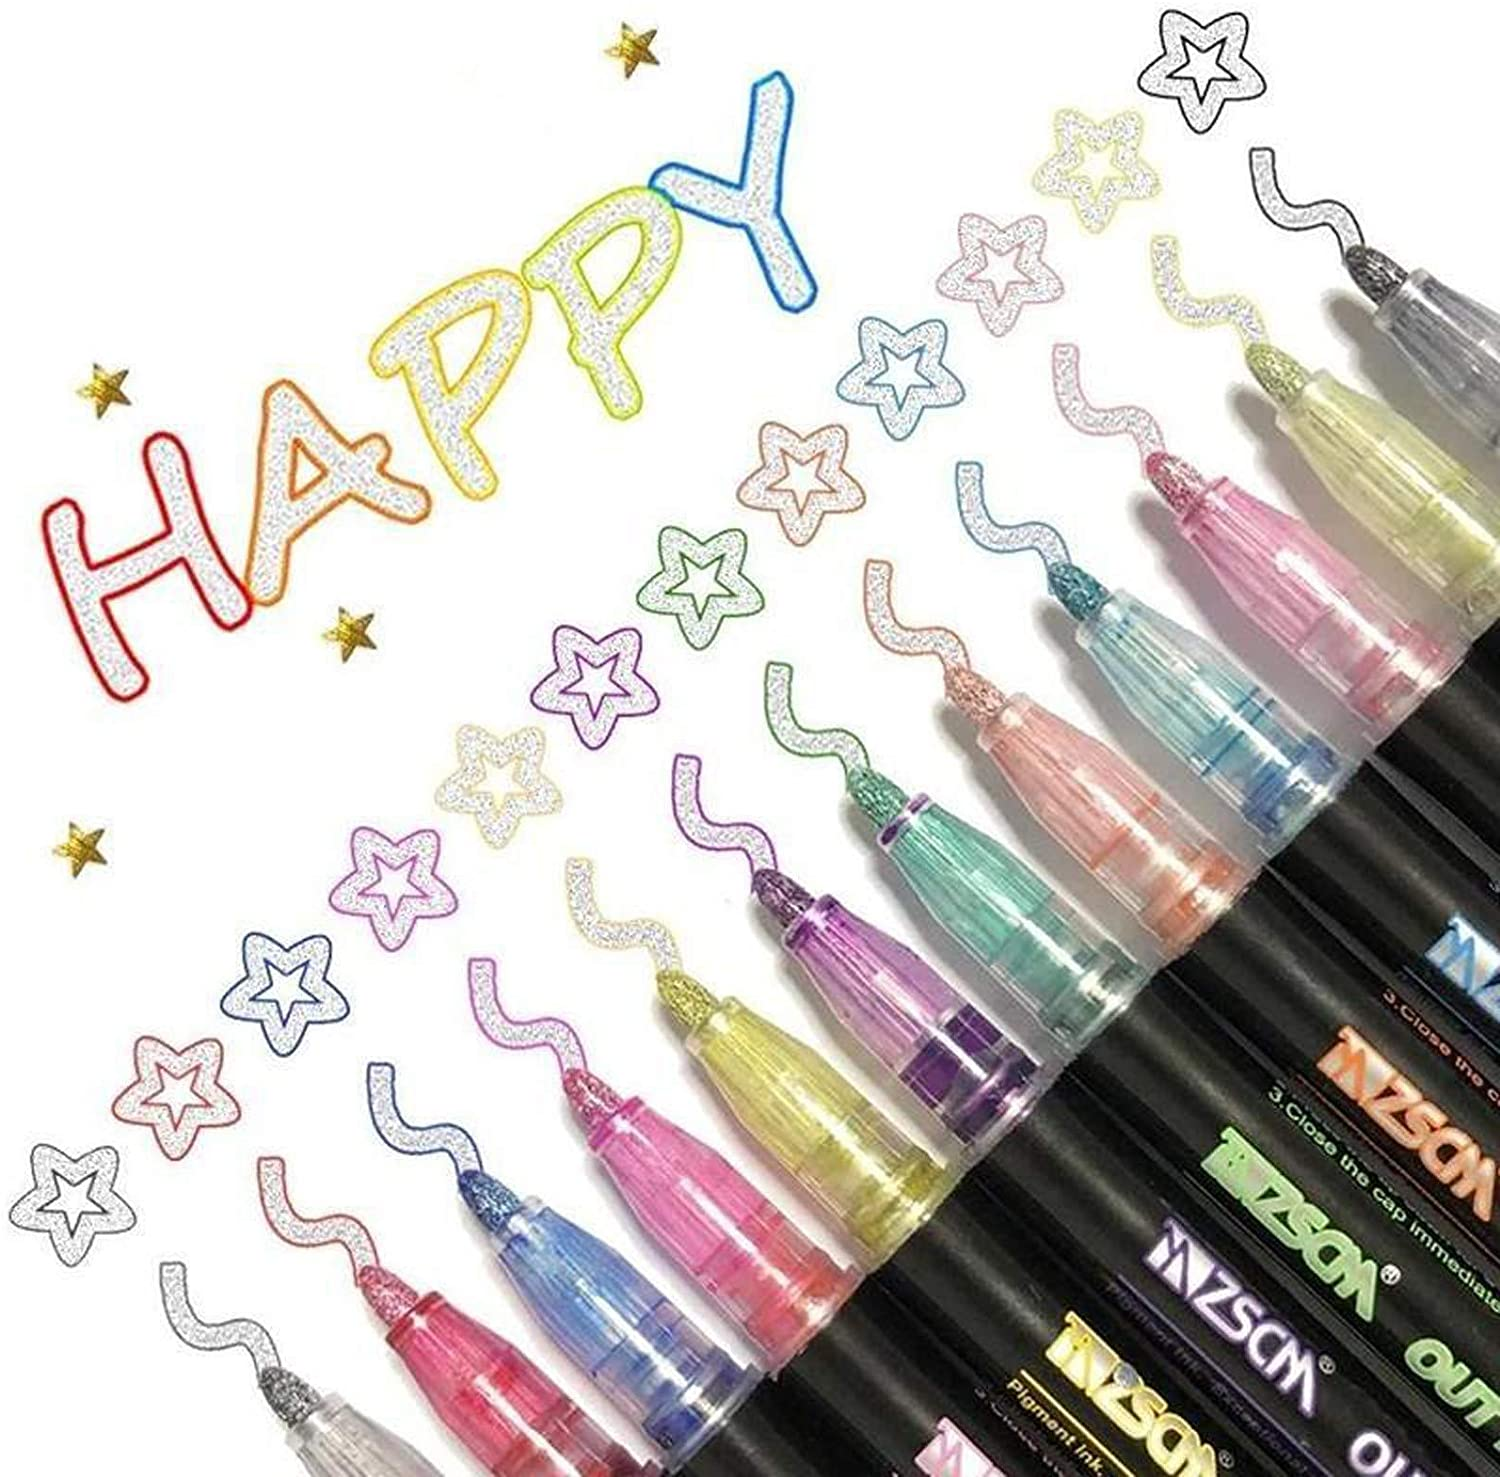 Magarbe 12PC Self-Outline Metallic Markers, Double Line Pen Journal Pens & Colored Permanent Marker Pens for Kids, Amateurs and Professionals Illustration Coloring Sketching Card Making